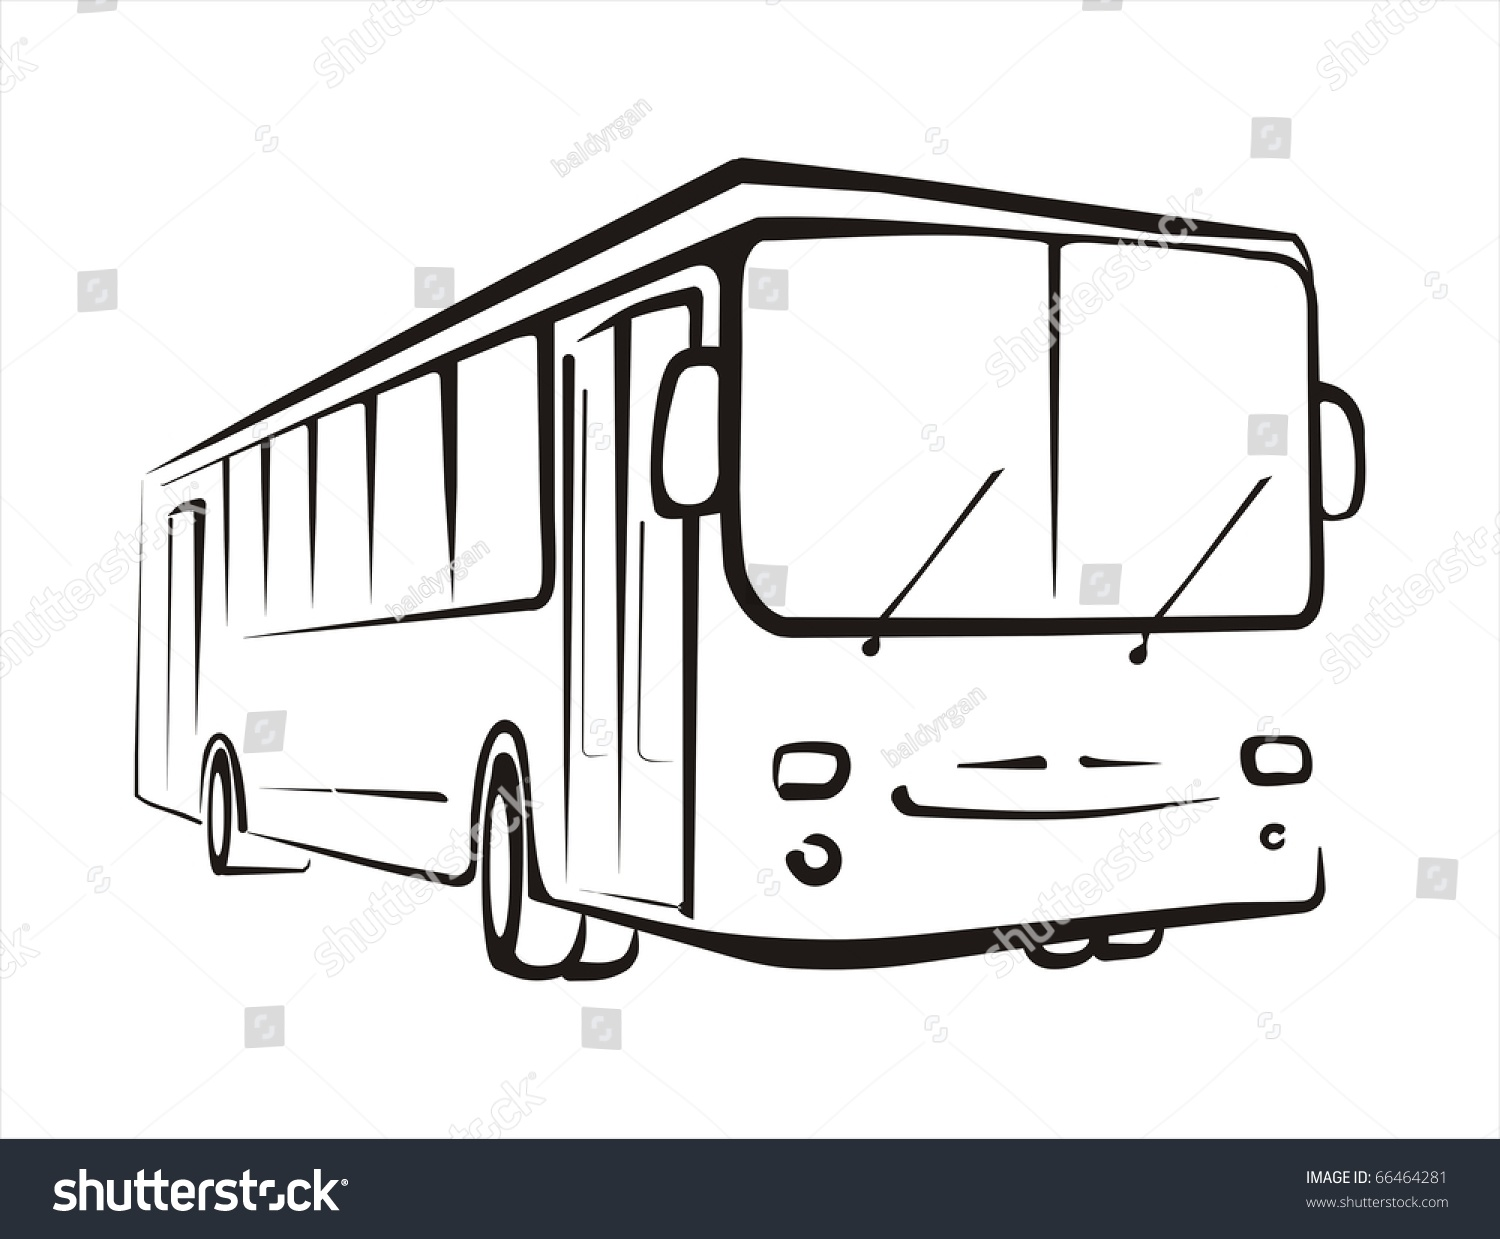 Bus Sketch Isolated Illustration Oi Black Stock Vector ...